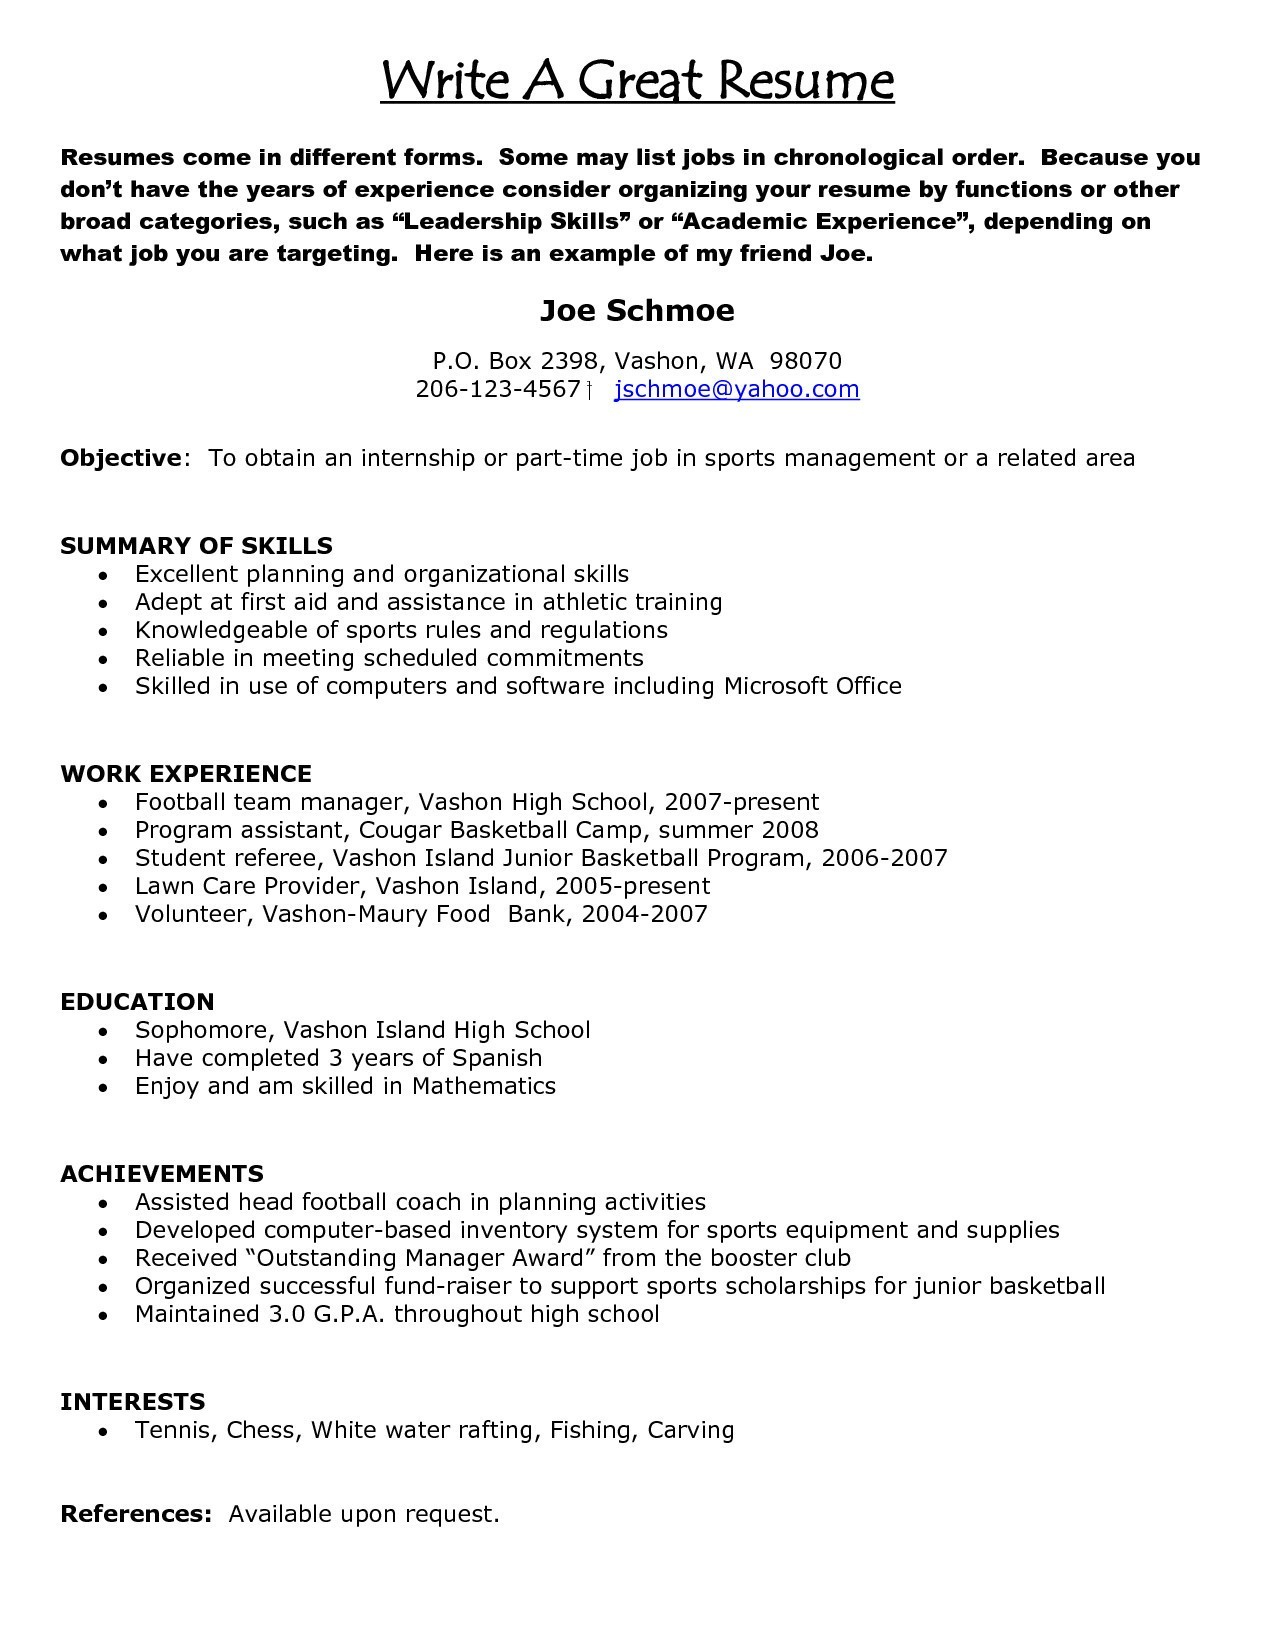 Sports Management Resume - Perfect Your Resume Save How to Write A Perfect Resume Examples